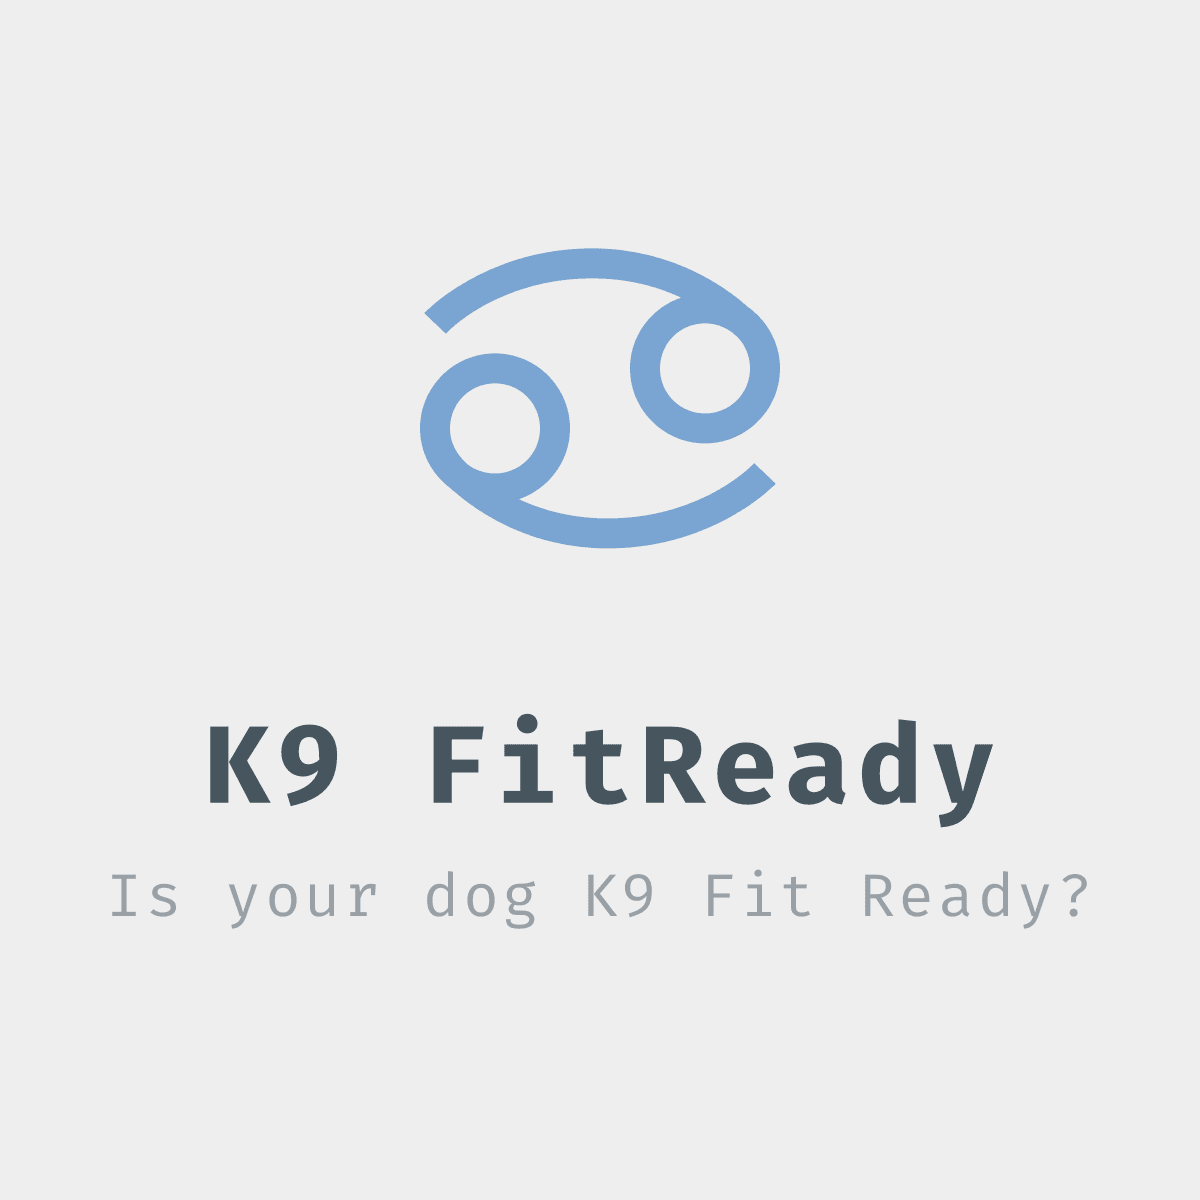 K9 FITREADY PERSONALIZED CANINE FITNESS PROGRAM